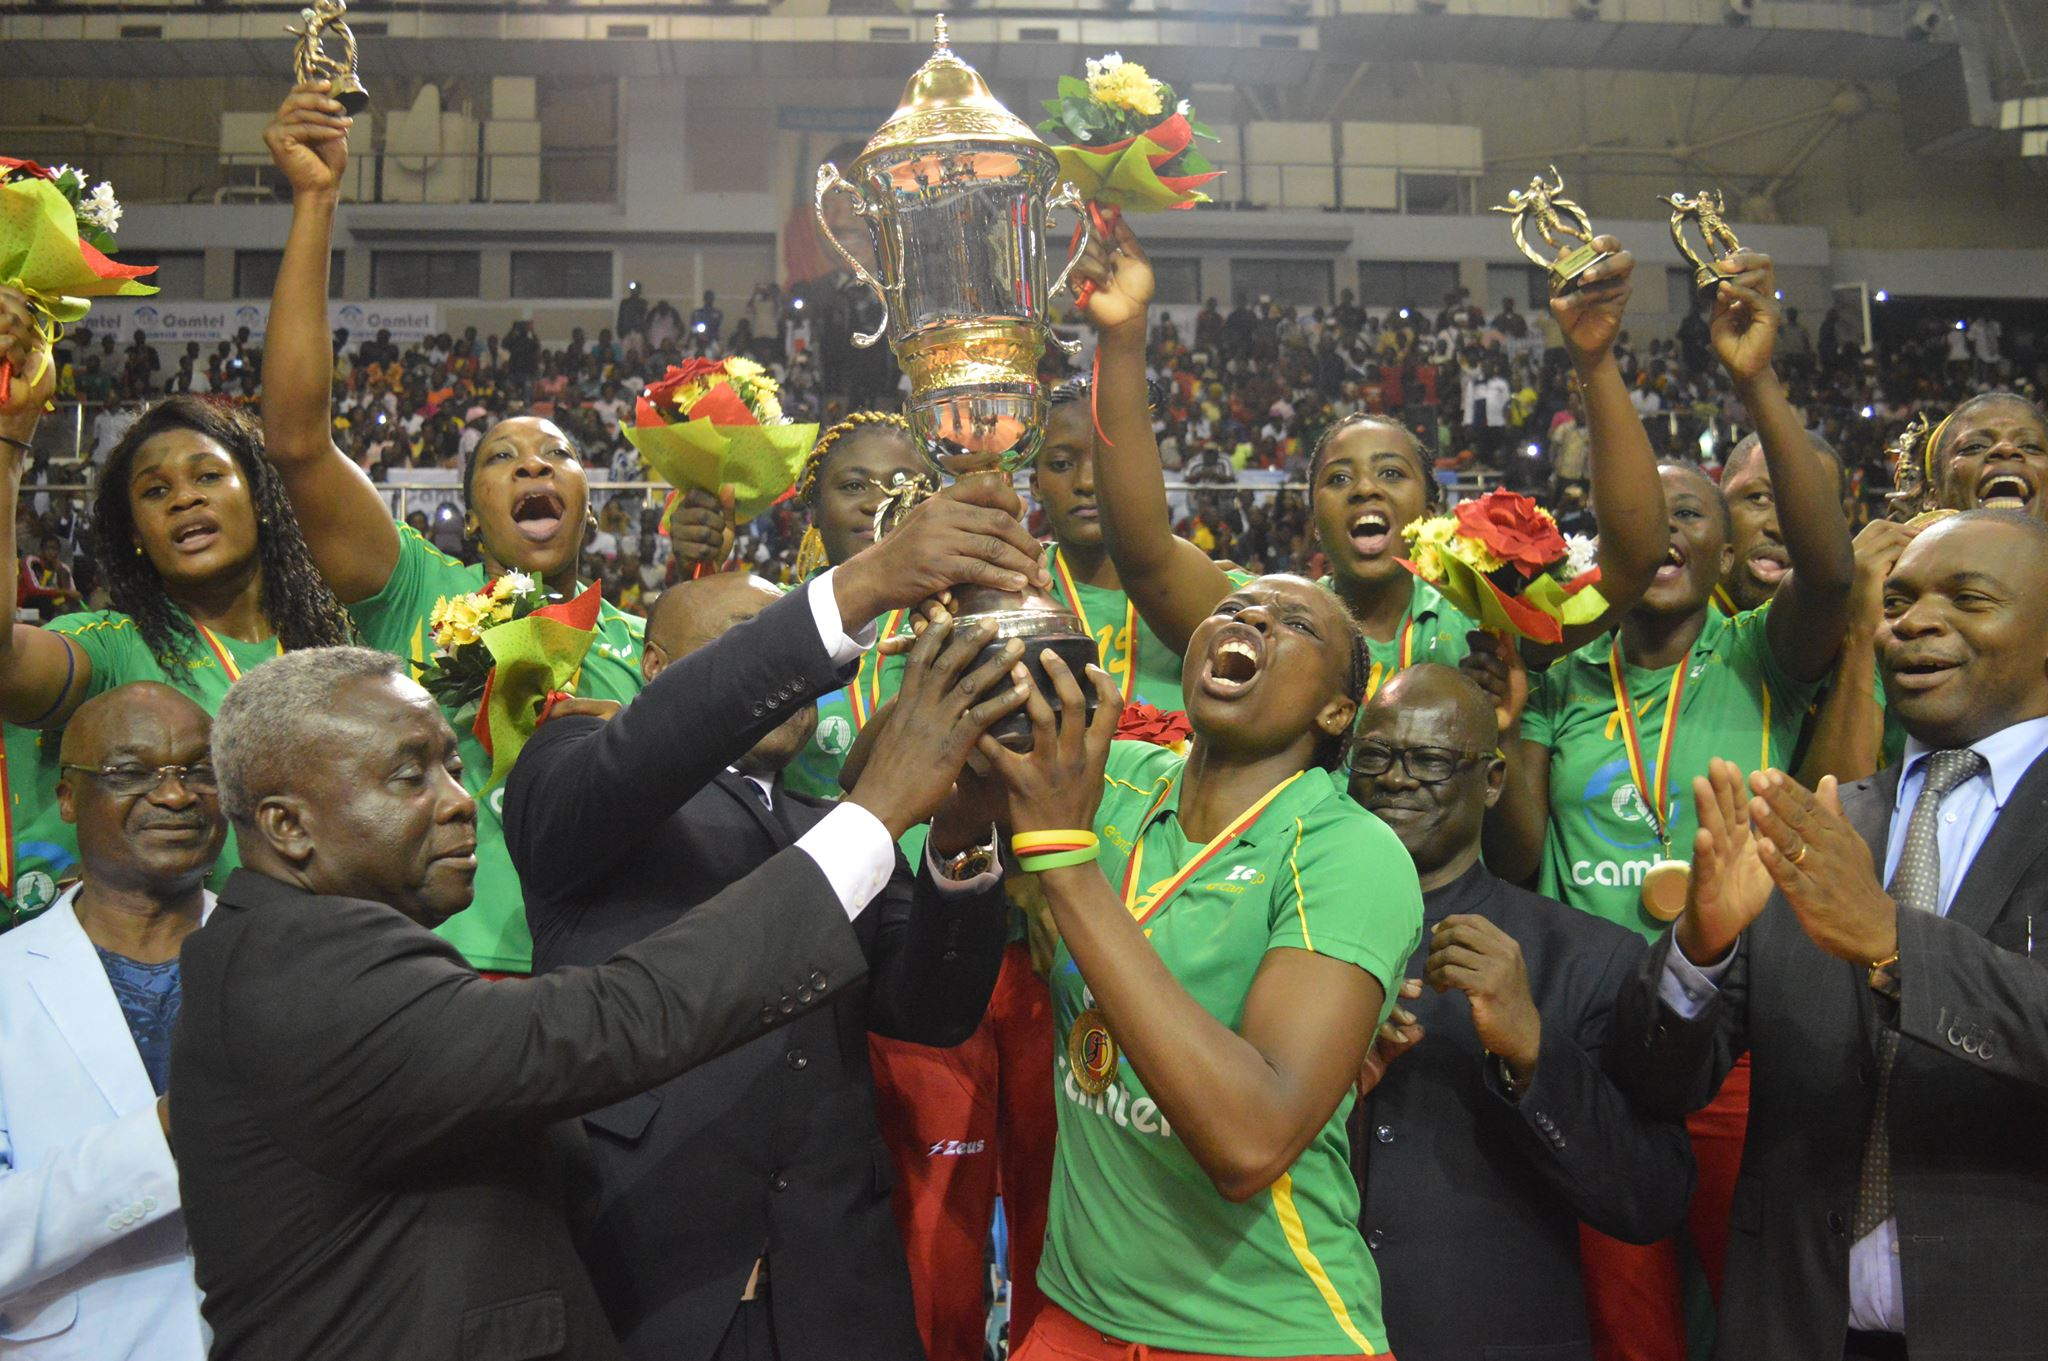 CAN Volleyball (D) 2017 : Le Cameroun champion d'Afrique